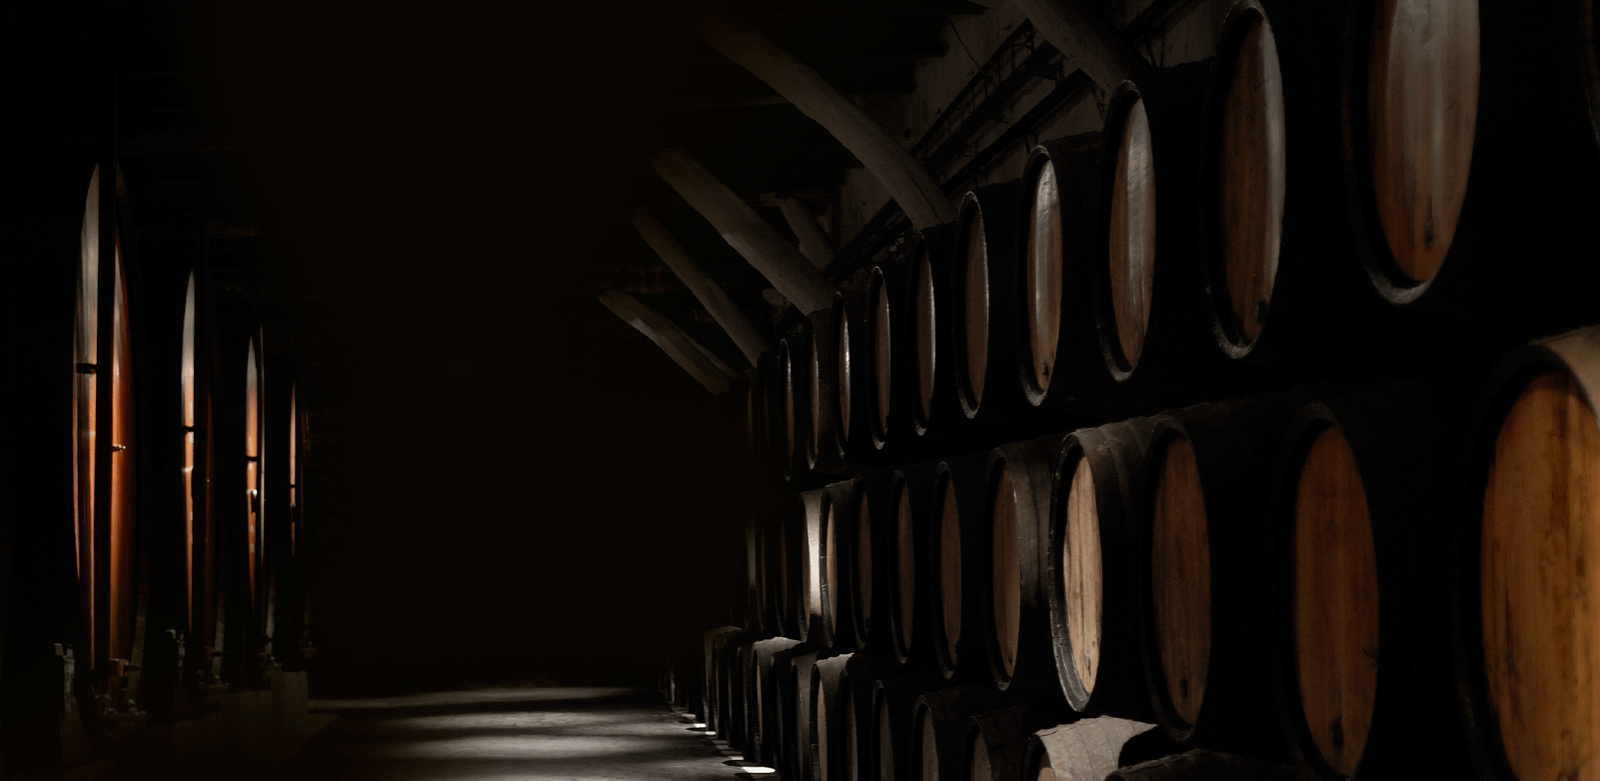 OUR GRAPPAS AGED IN BARRIQUES AND BARRELS OF REFINED WOOD